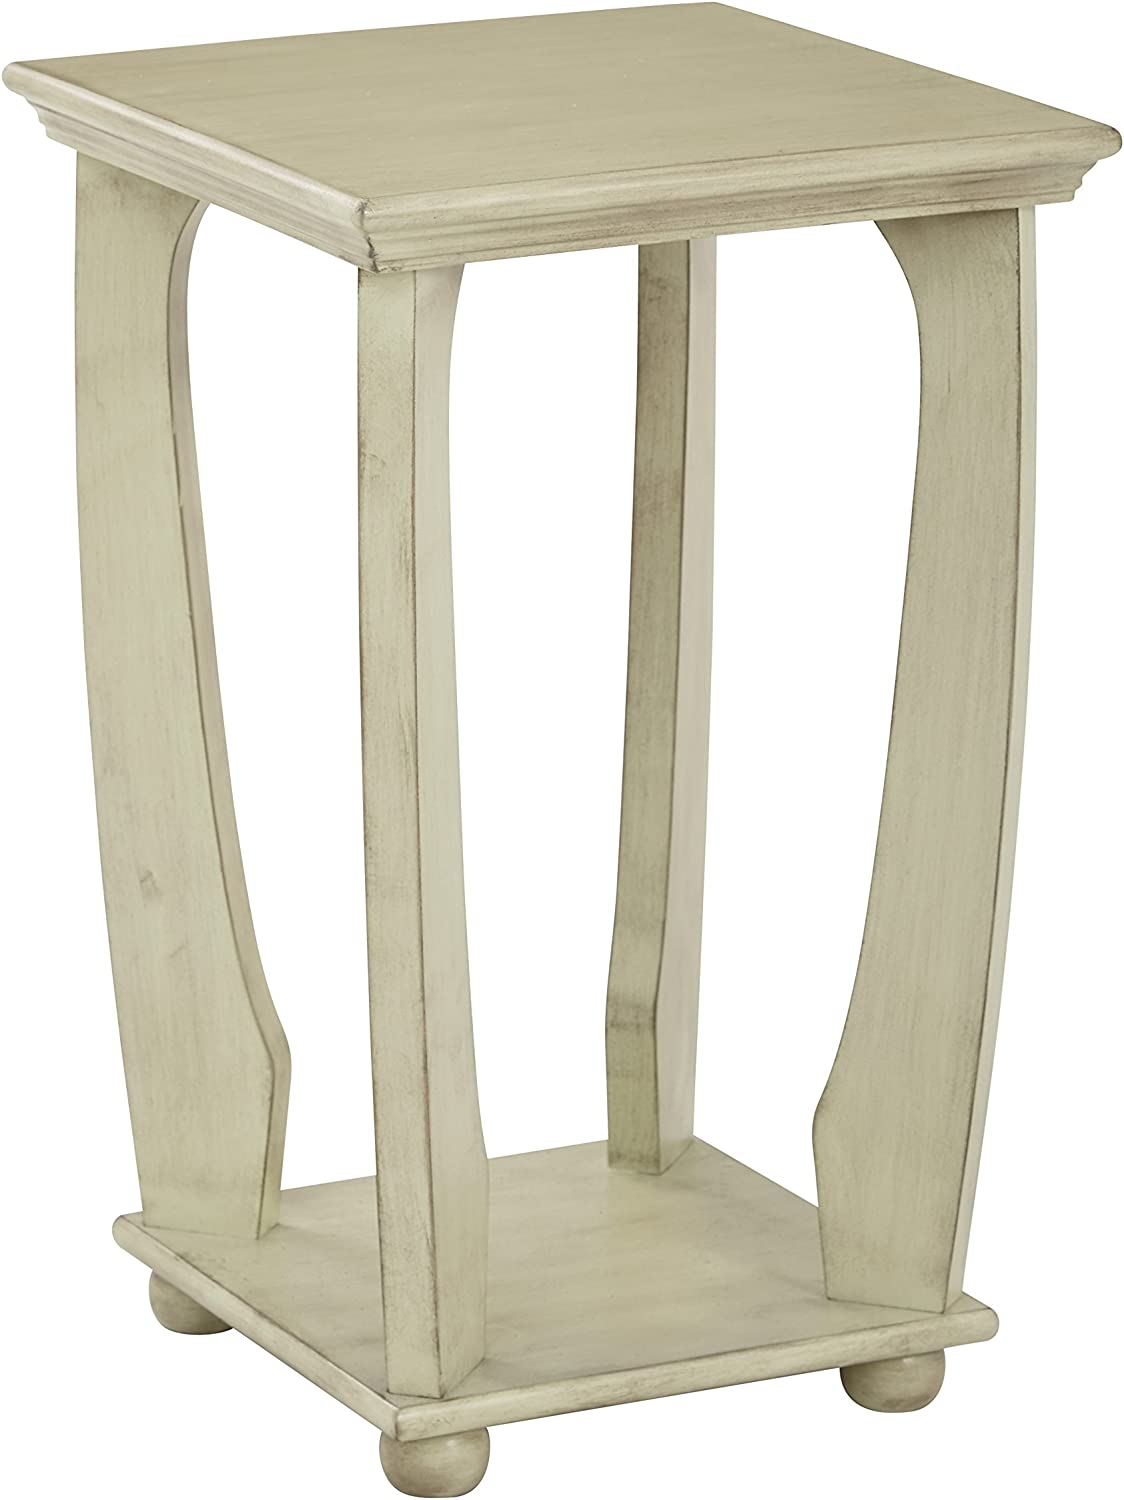 - Amazon.com: Office Star Mila Hand Painted Square Accent Table